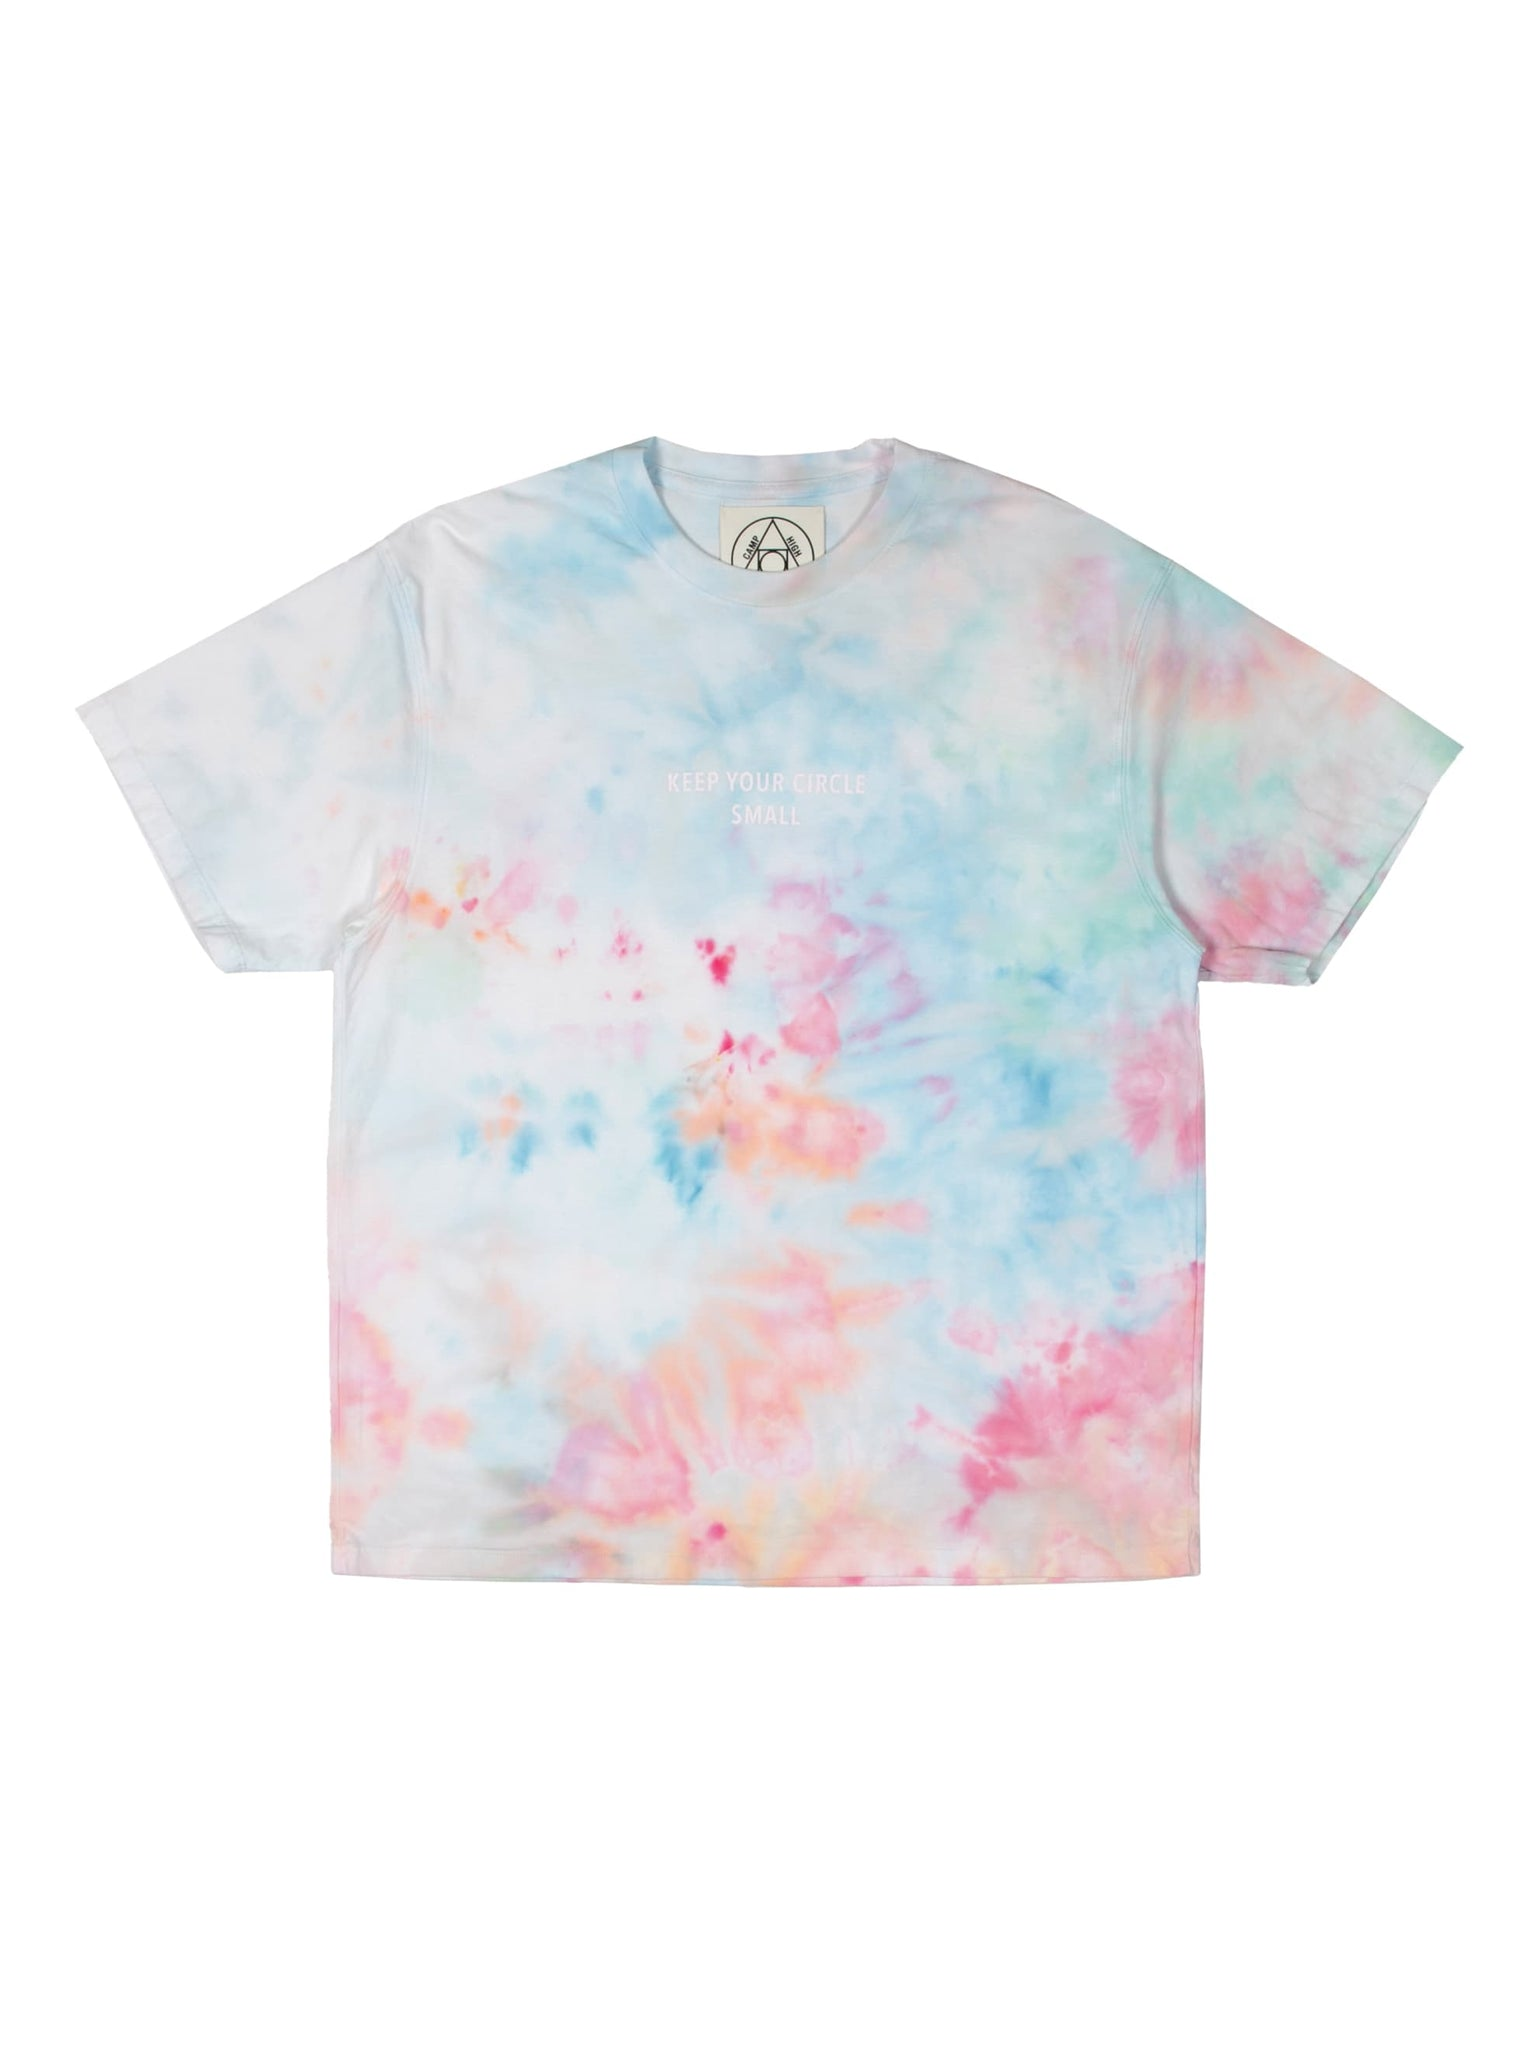 Camp High Small Circle Ice Dye T-shirt